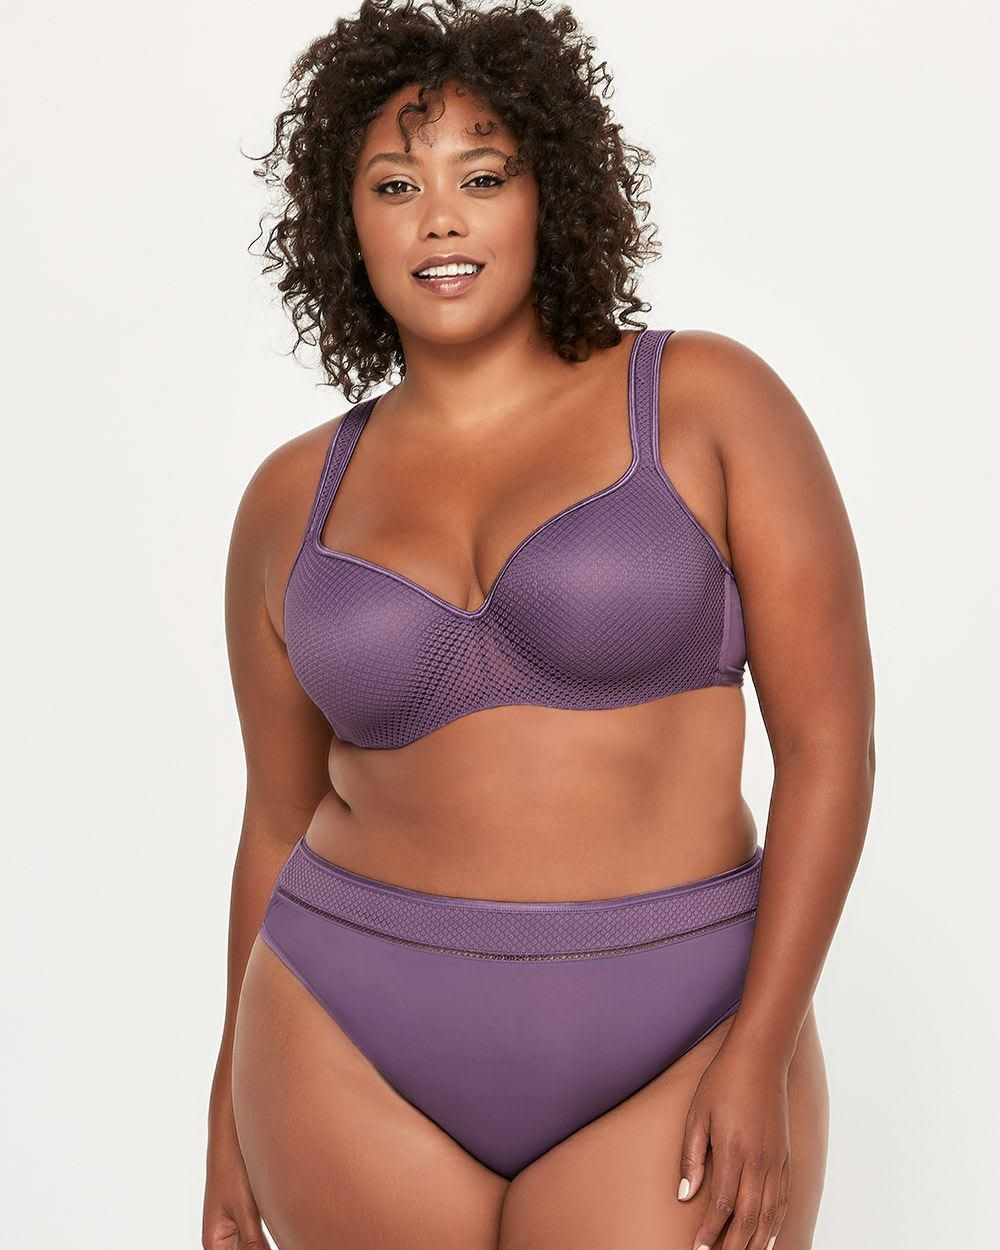 f93502f3b48 Addition Elle. Women s Purple Printed Padded T-shirt Bra With Mesh - Ti  Voglio